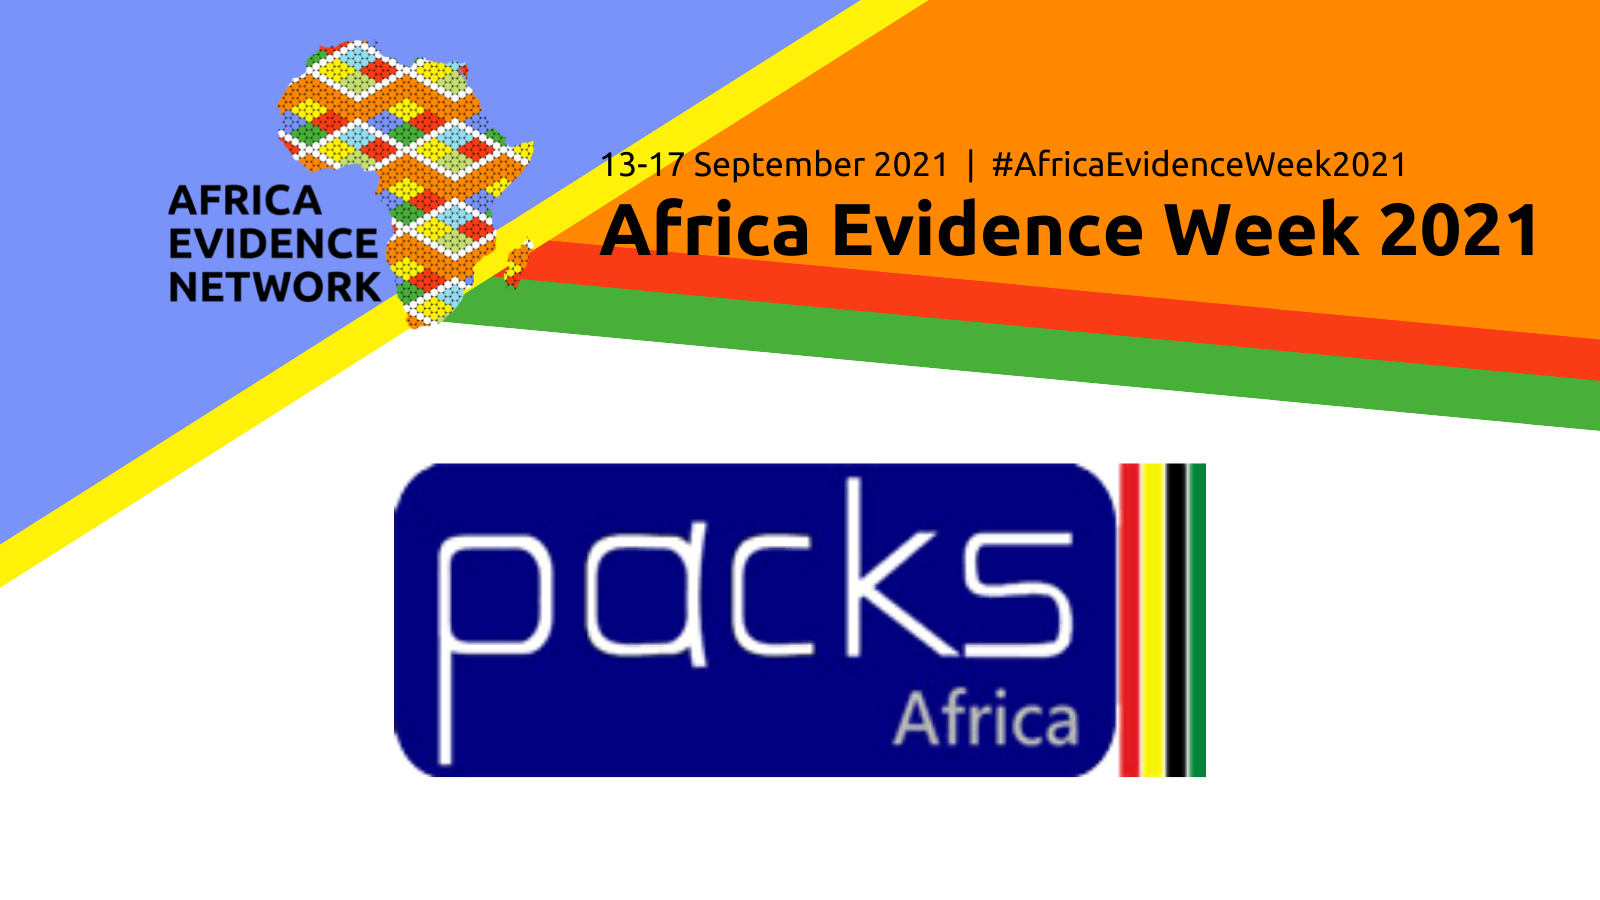 Africa Evidence Week 2021 event: Emerging technologies to support ecosystem activities for evidence use